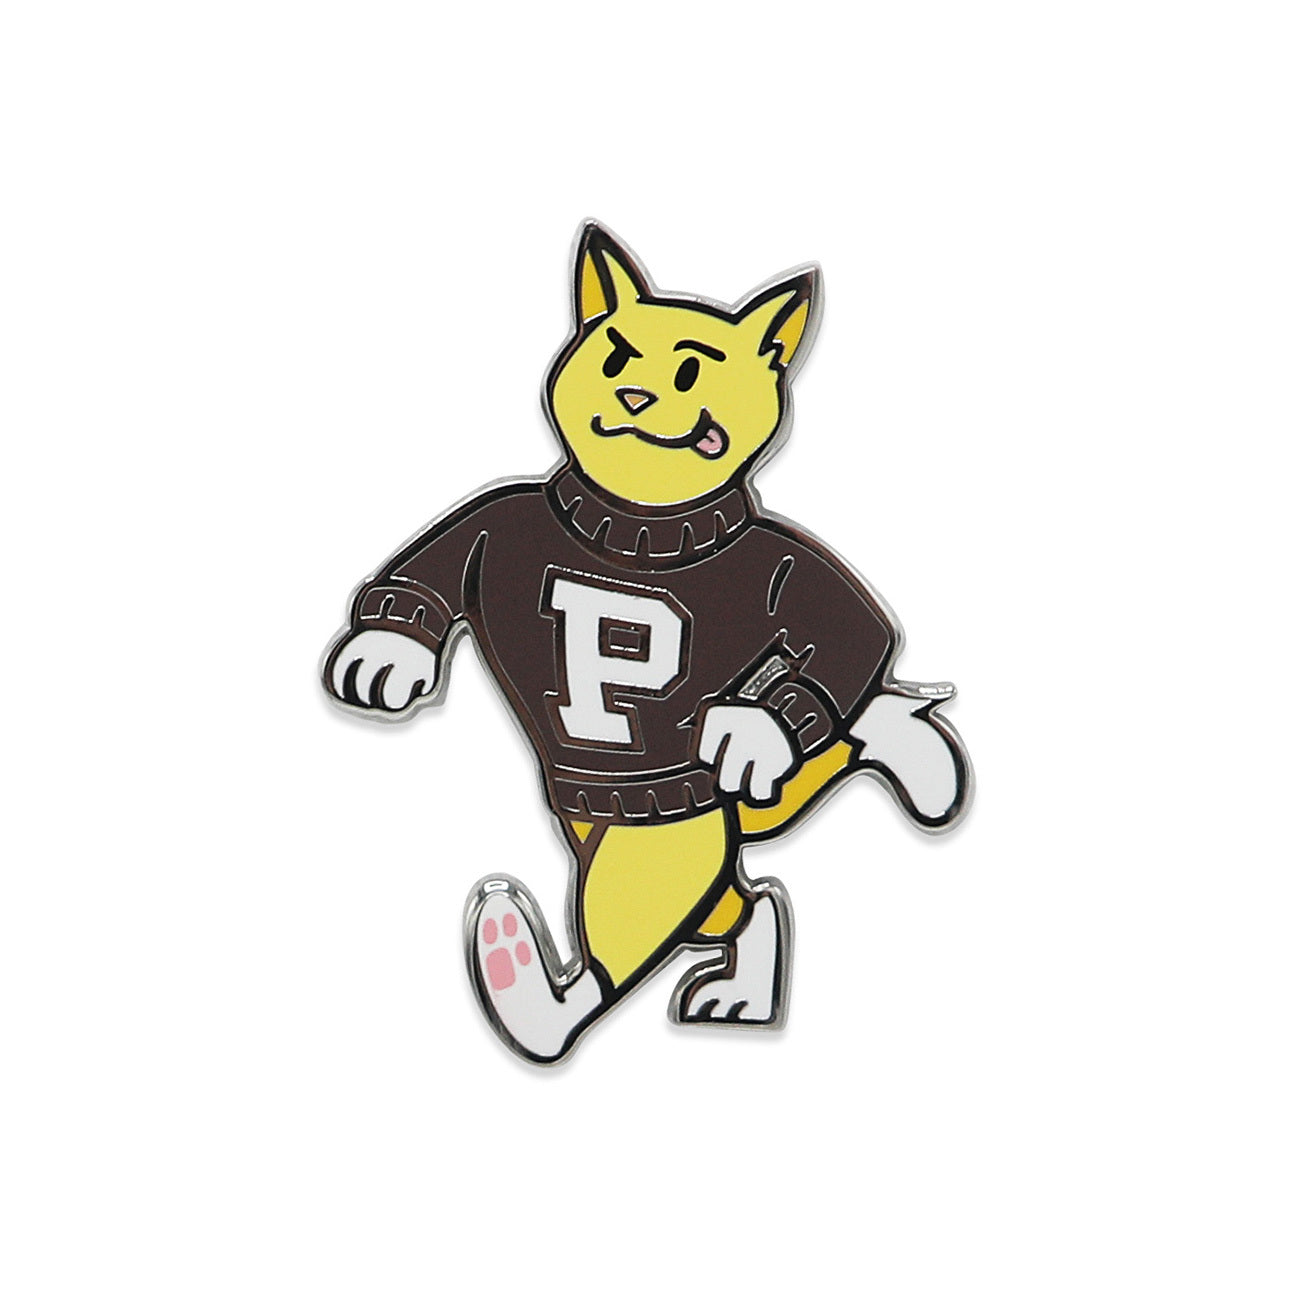 Mascot Kemper Pin - Free with $65 Purchase